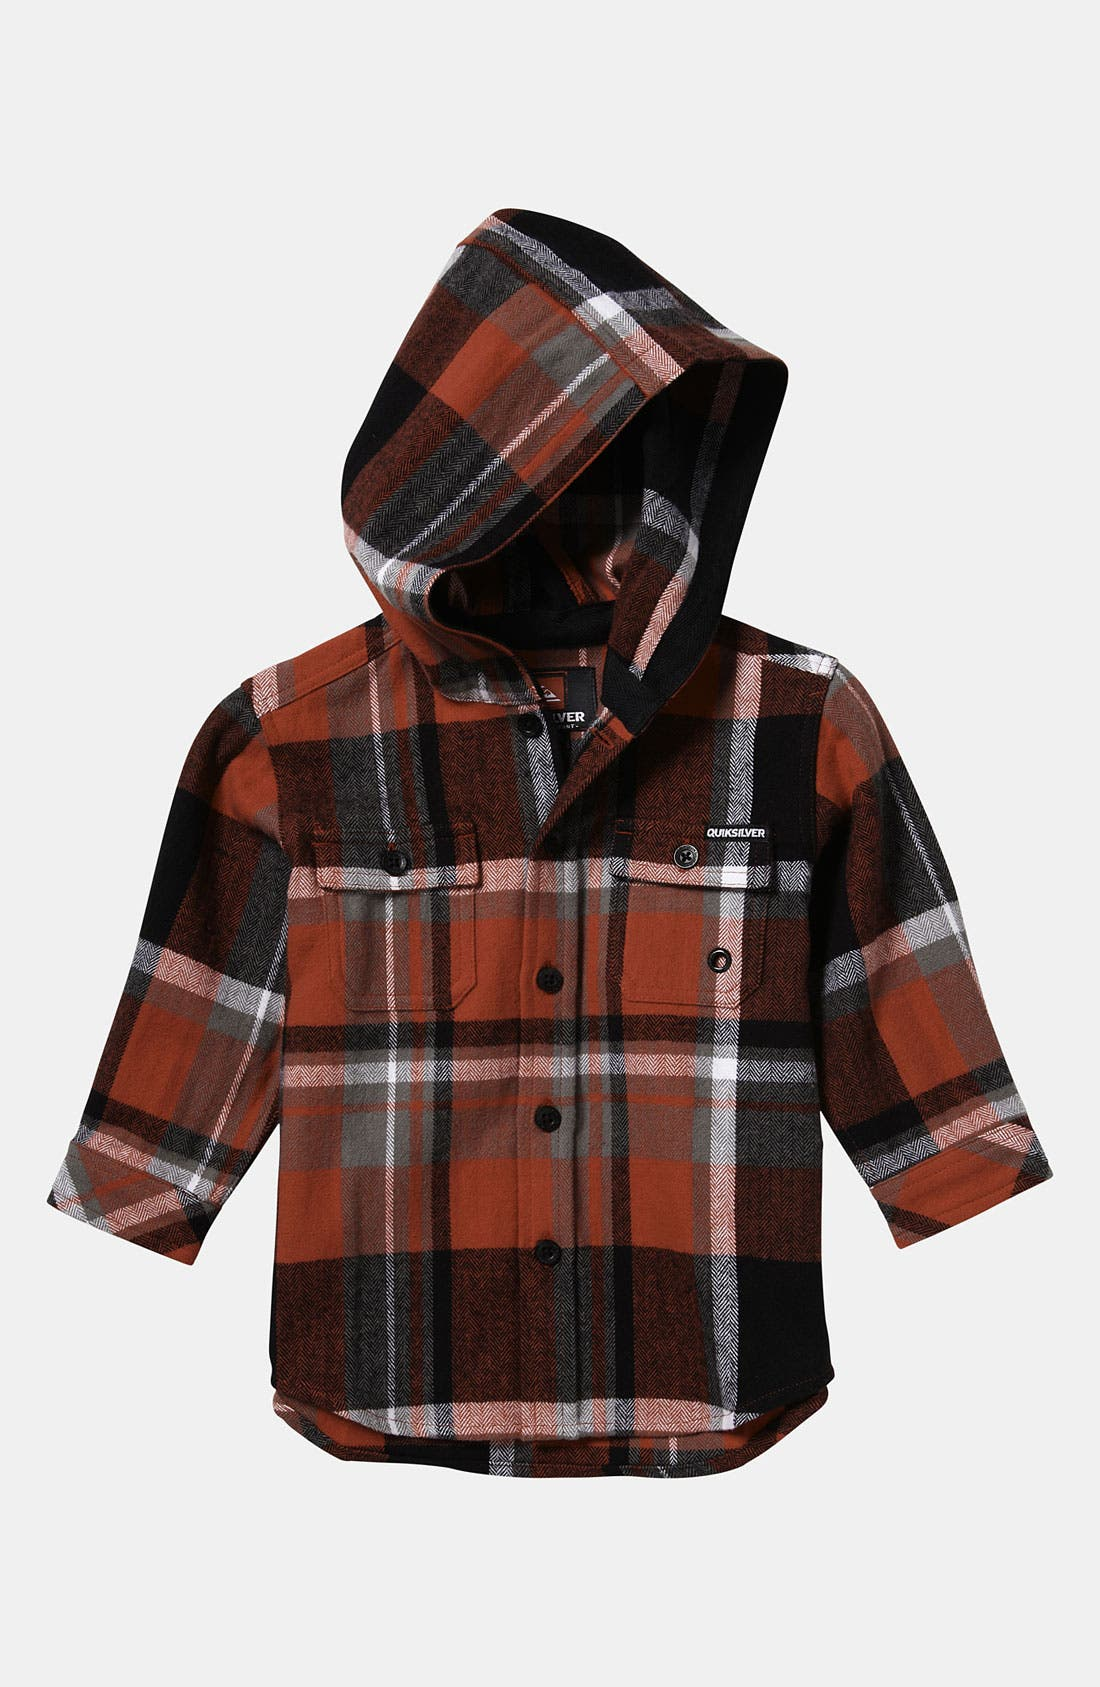 Alternate Image 1 Selected - Quiksilver 'Four Short' Hooded Flannel Shirt (Infant)